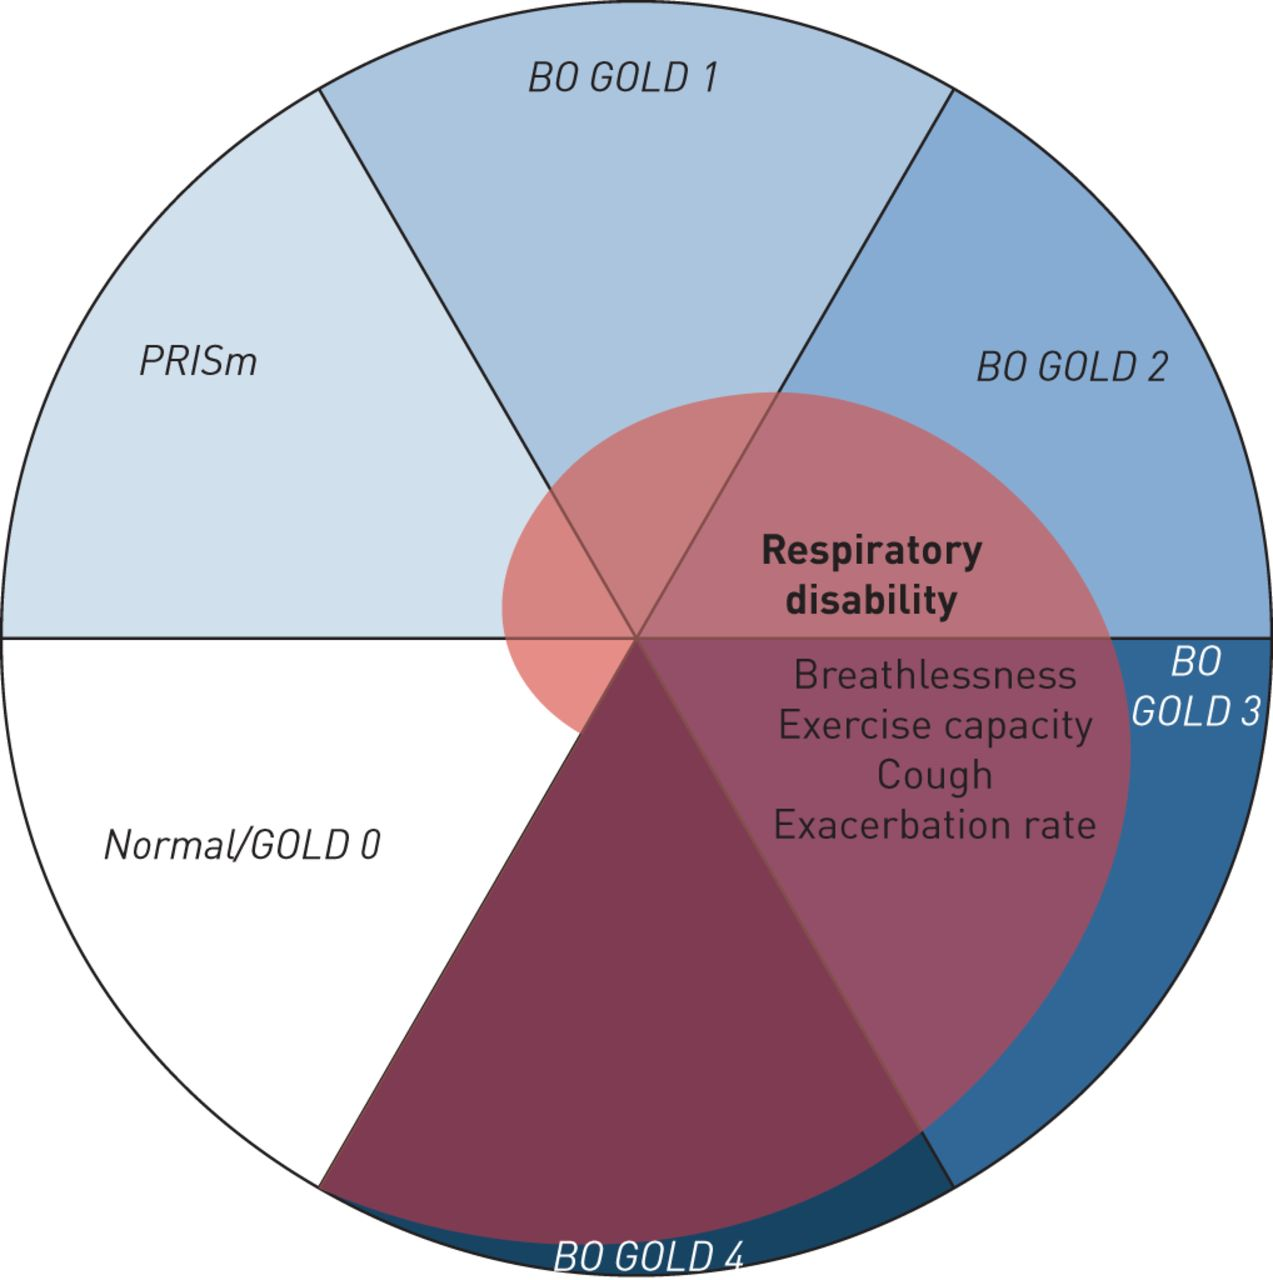 COPD beyond proximal bronchial obstruction: phenotyping and related